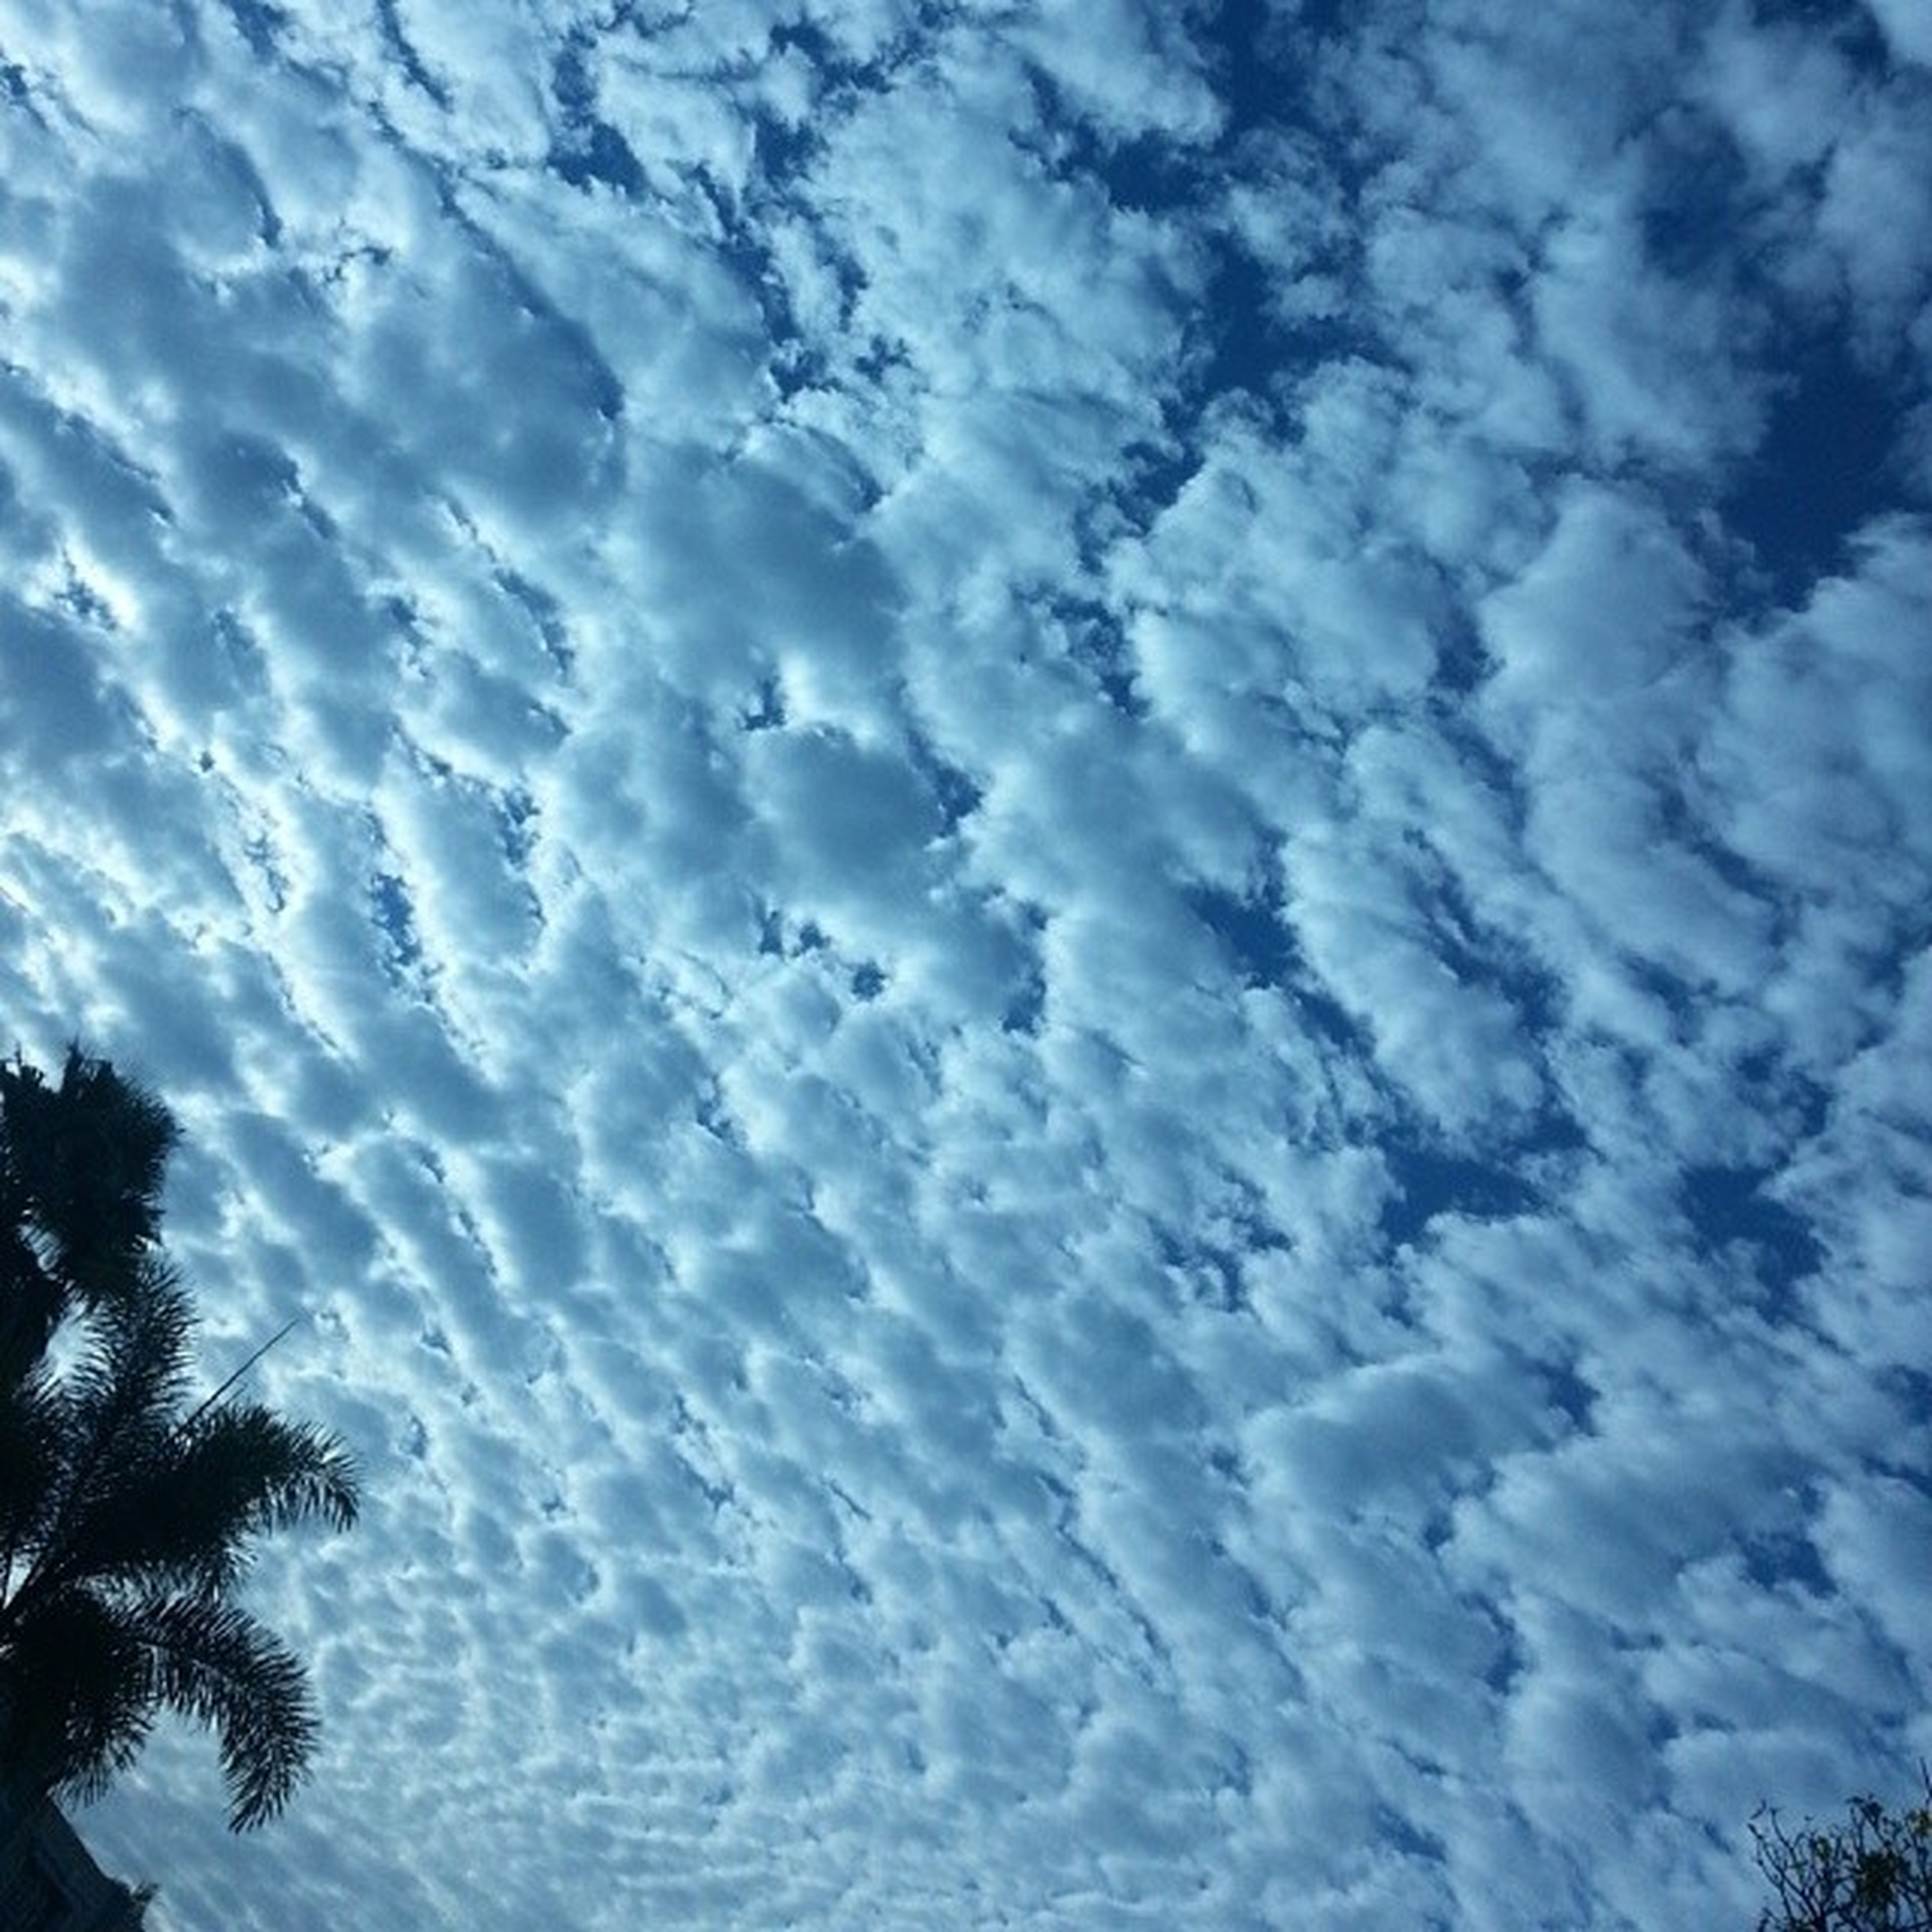 sky, beauty in nature, cloud - sky, full frame, tranquility, low angle view, scenics, backgrounds, nature, tranquil scene, blue, cloudy, sky only, idyllic, cloud, day, outdoors, cloudscape, no people, majestic